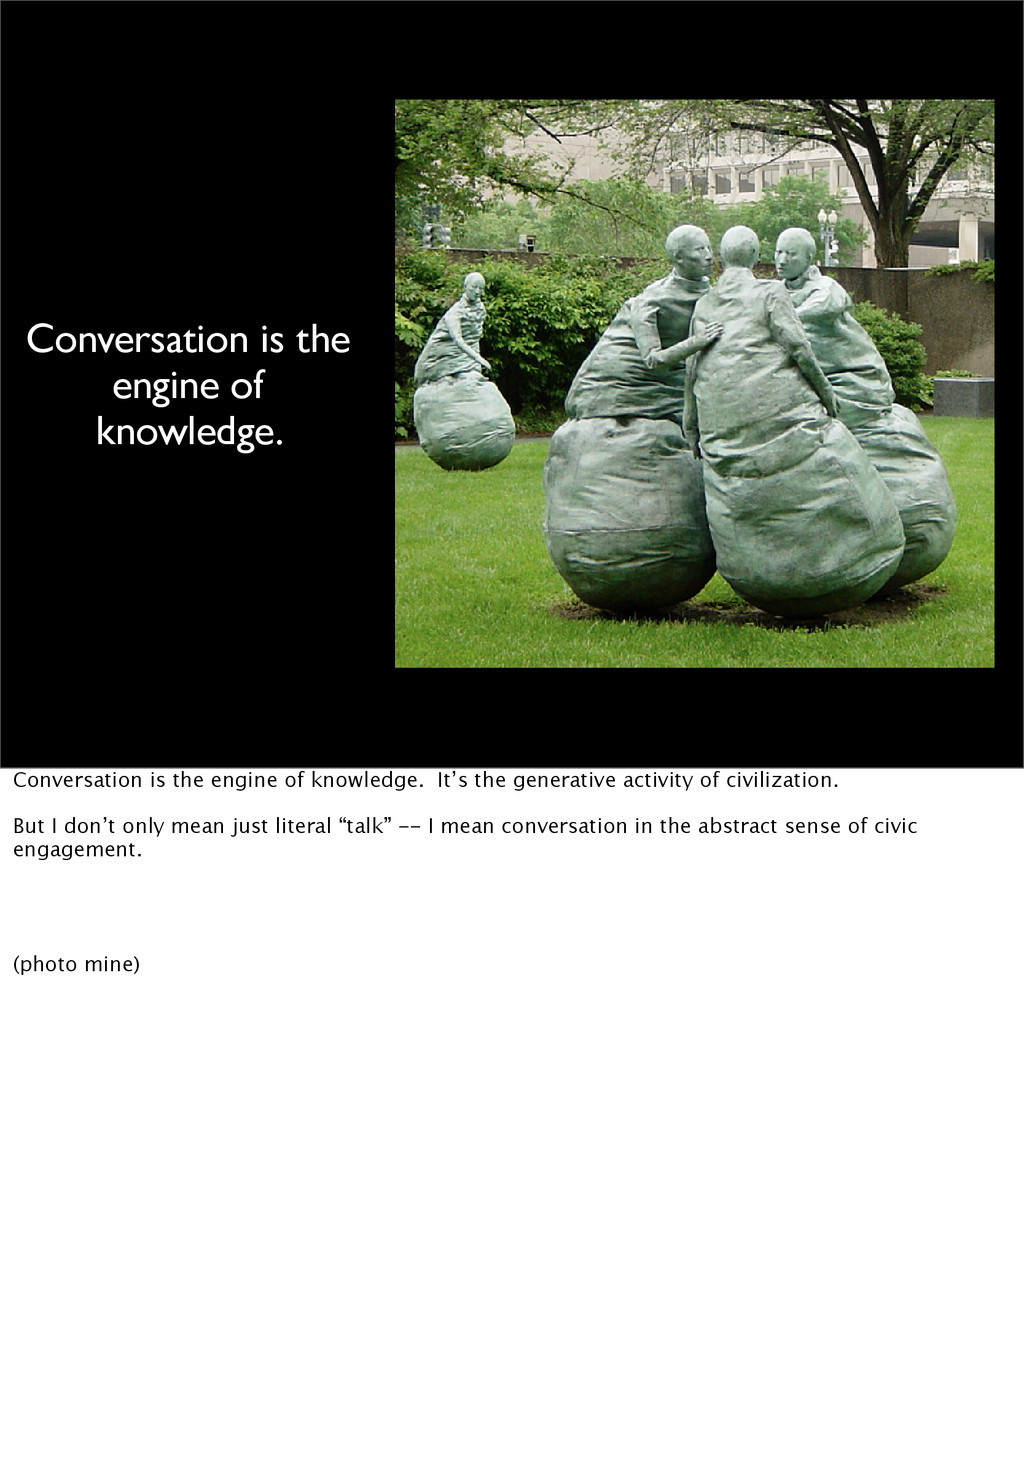 Conversation is the engine of knowledge. Conver...